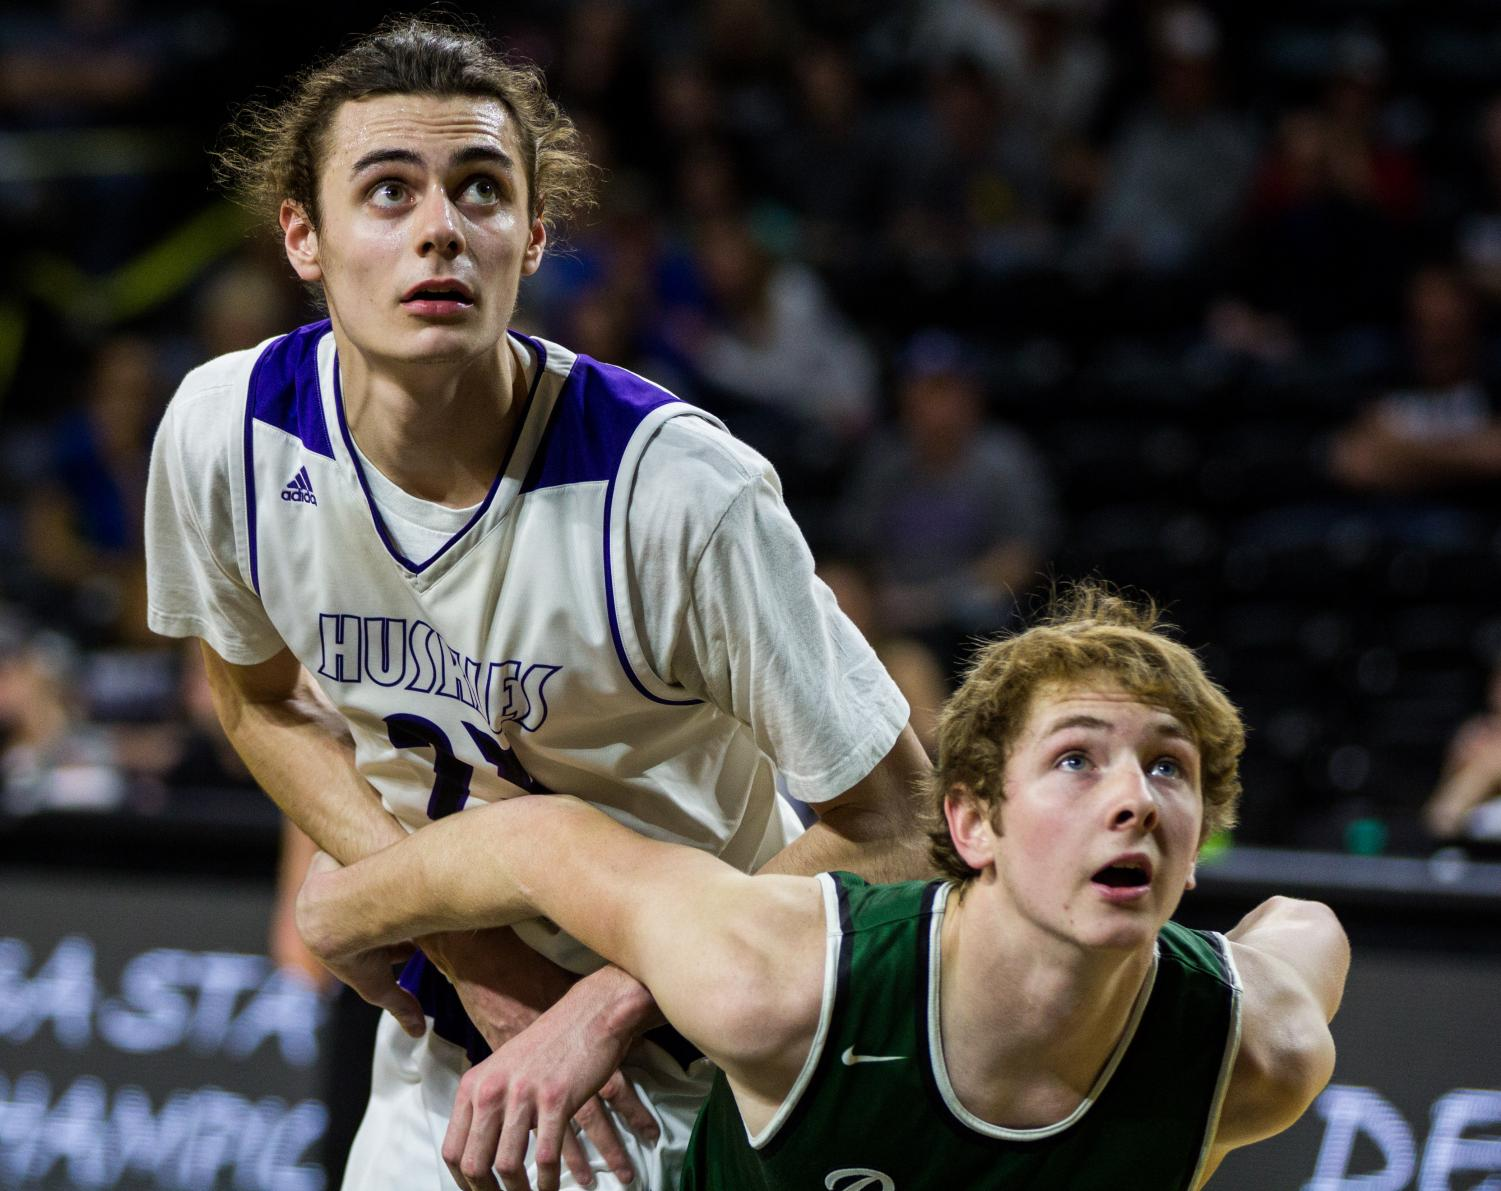 Blue Valley Northwest senior forward Parker Braun (23) watches a free throw attempt during the first half of the Huskies matchup with Derby at Charles Koch Arena. The Huskies defeated the Panthers, 82-61.